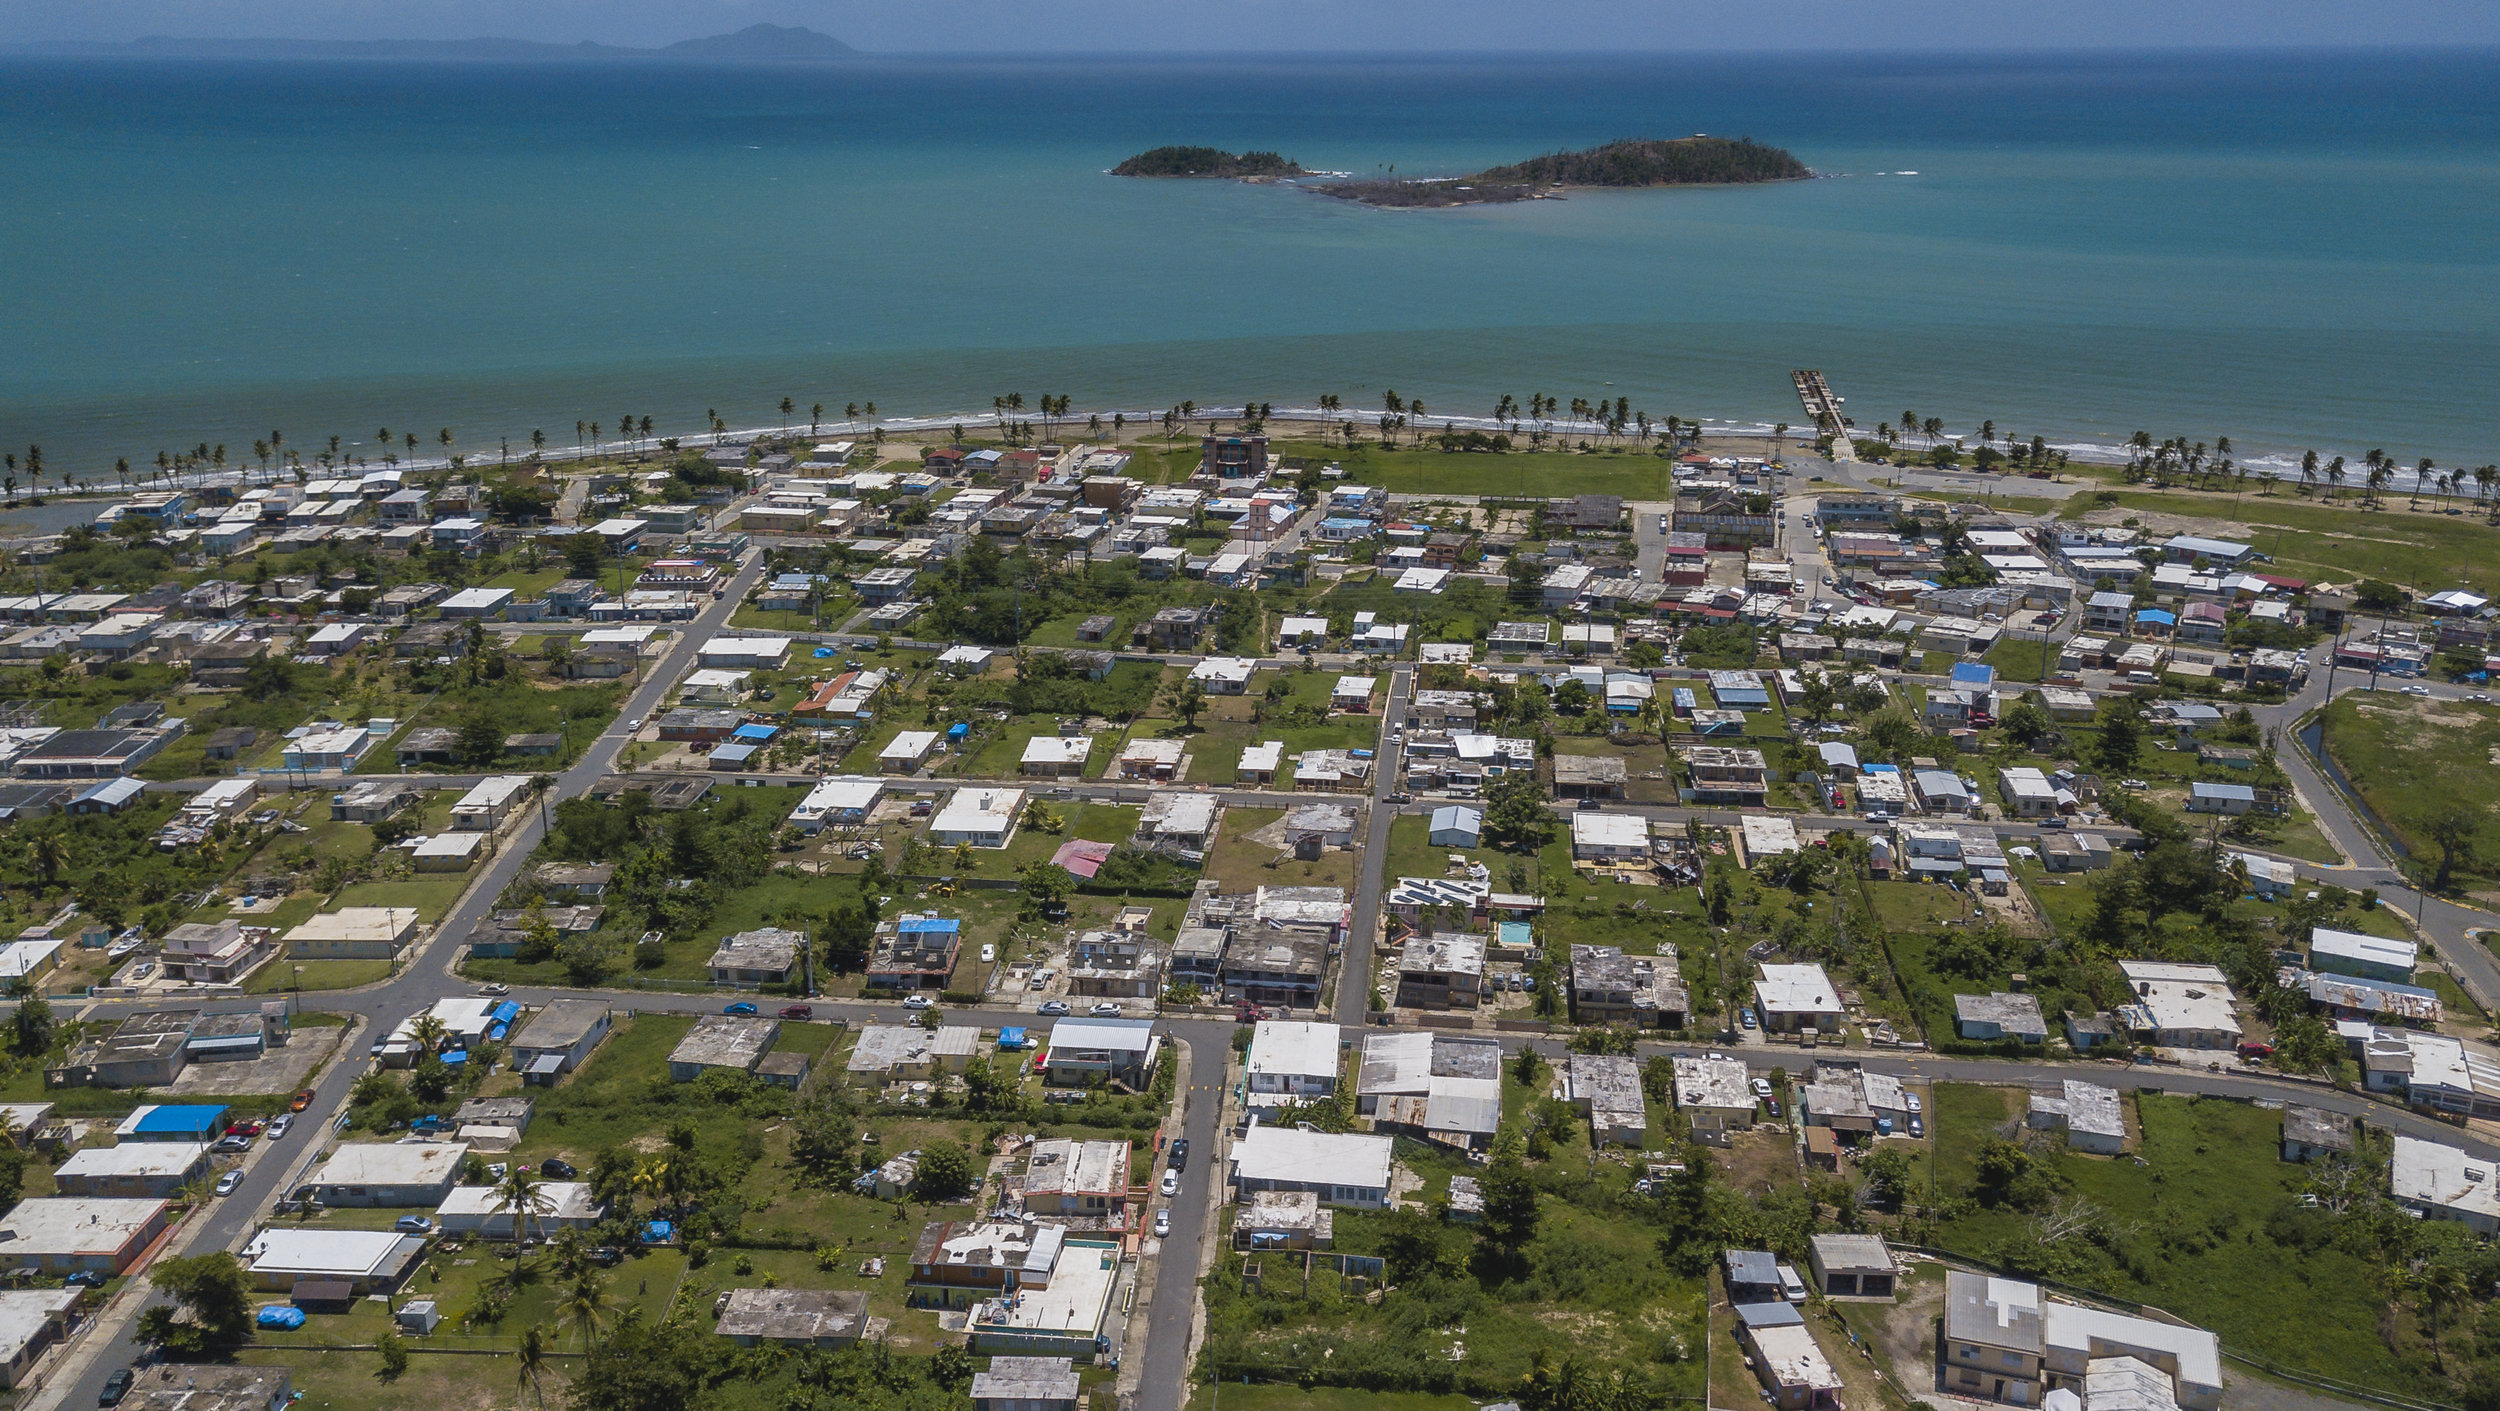 Punta Santiago, Humacao on August 23, 2018. Hurricane Maria devastated the seaside community and a year later homes with blue tarps await new roofs.